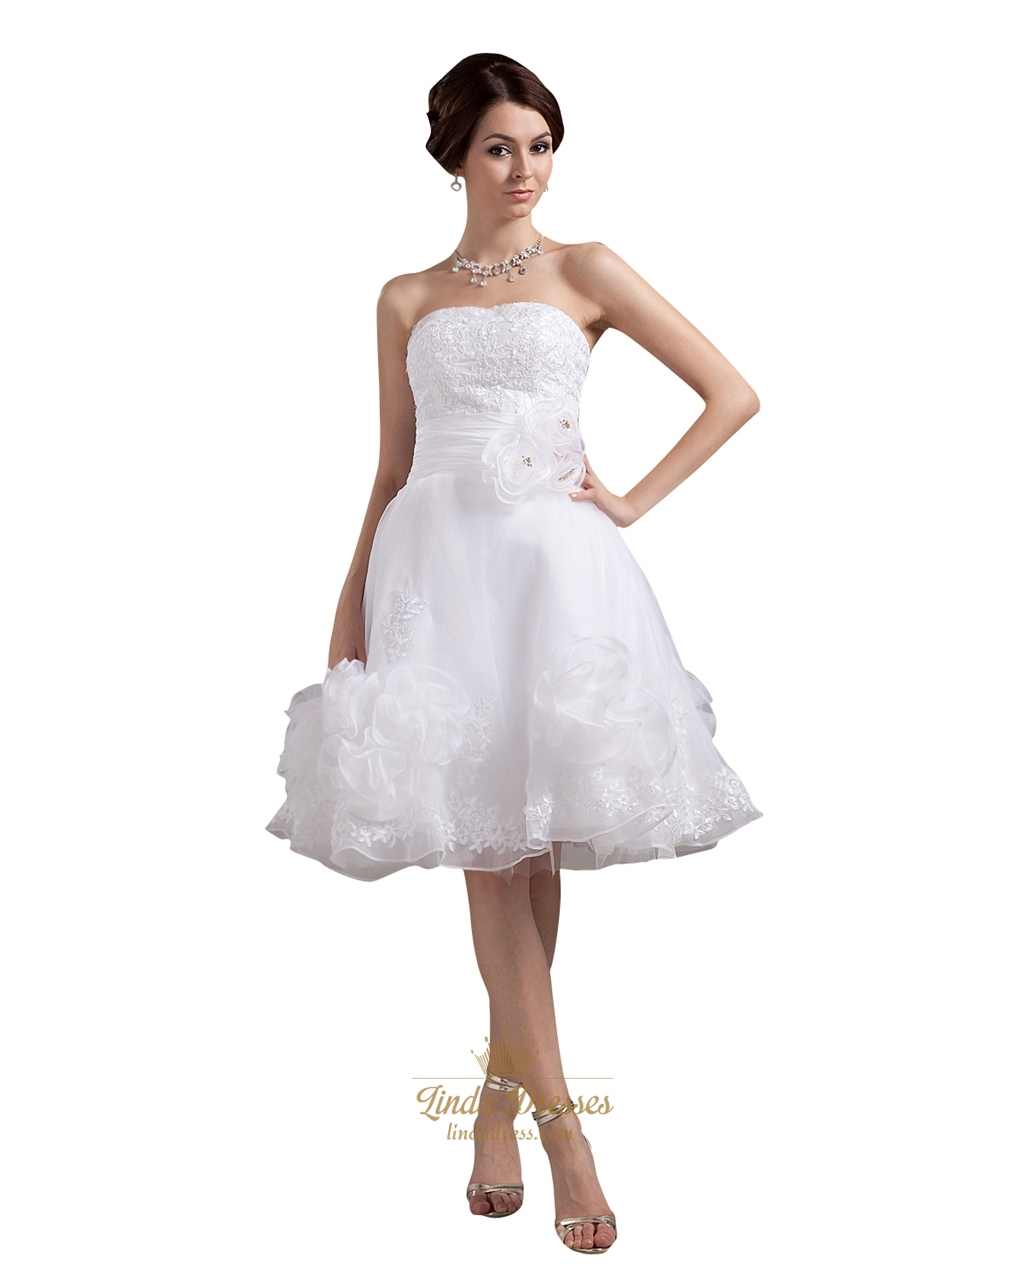 White Strapless Knee Length Organza Wedding Dress With